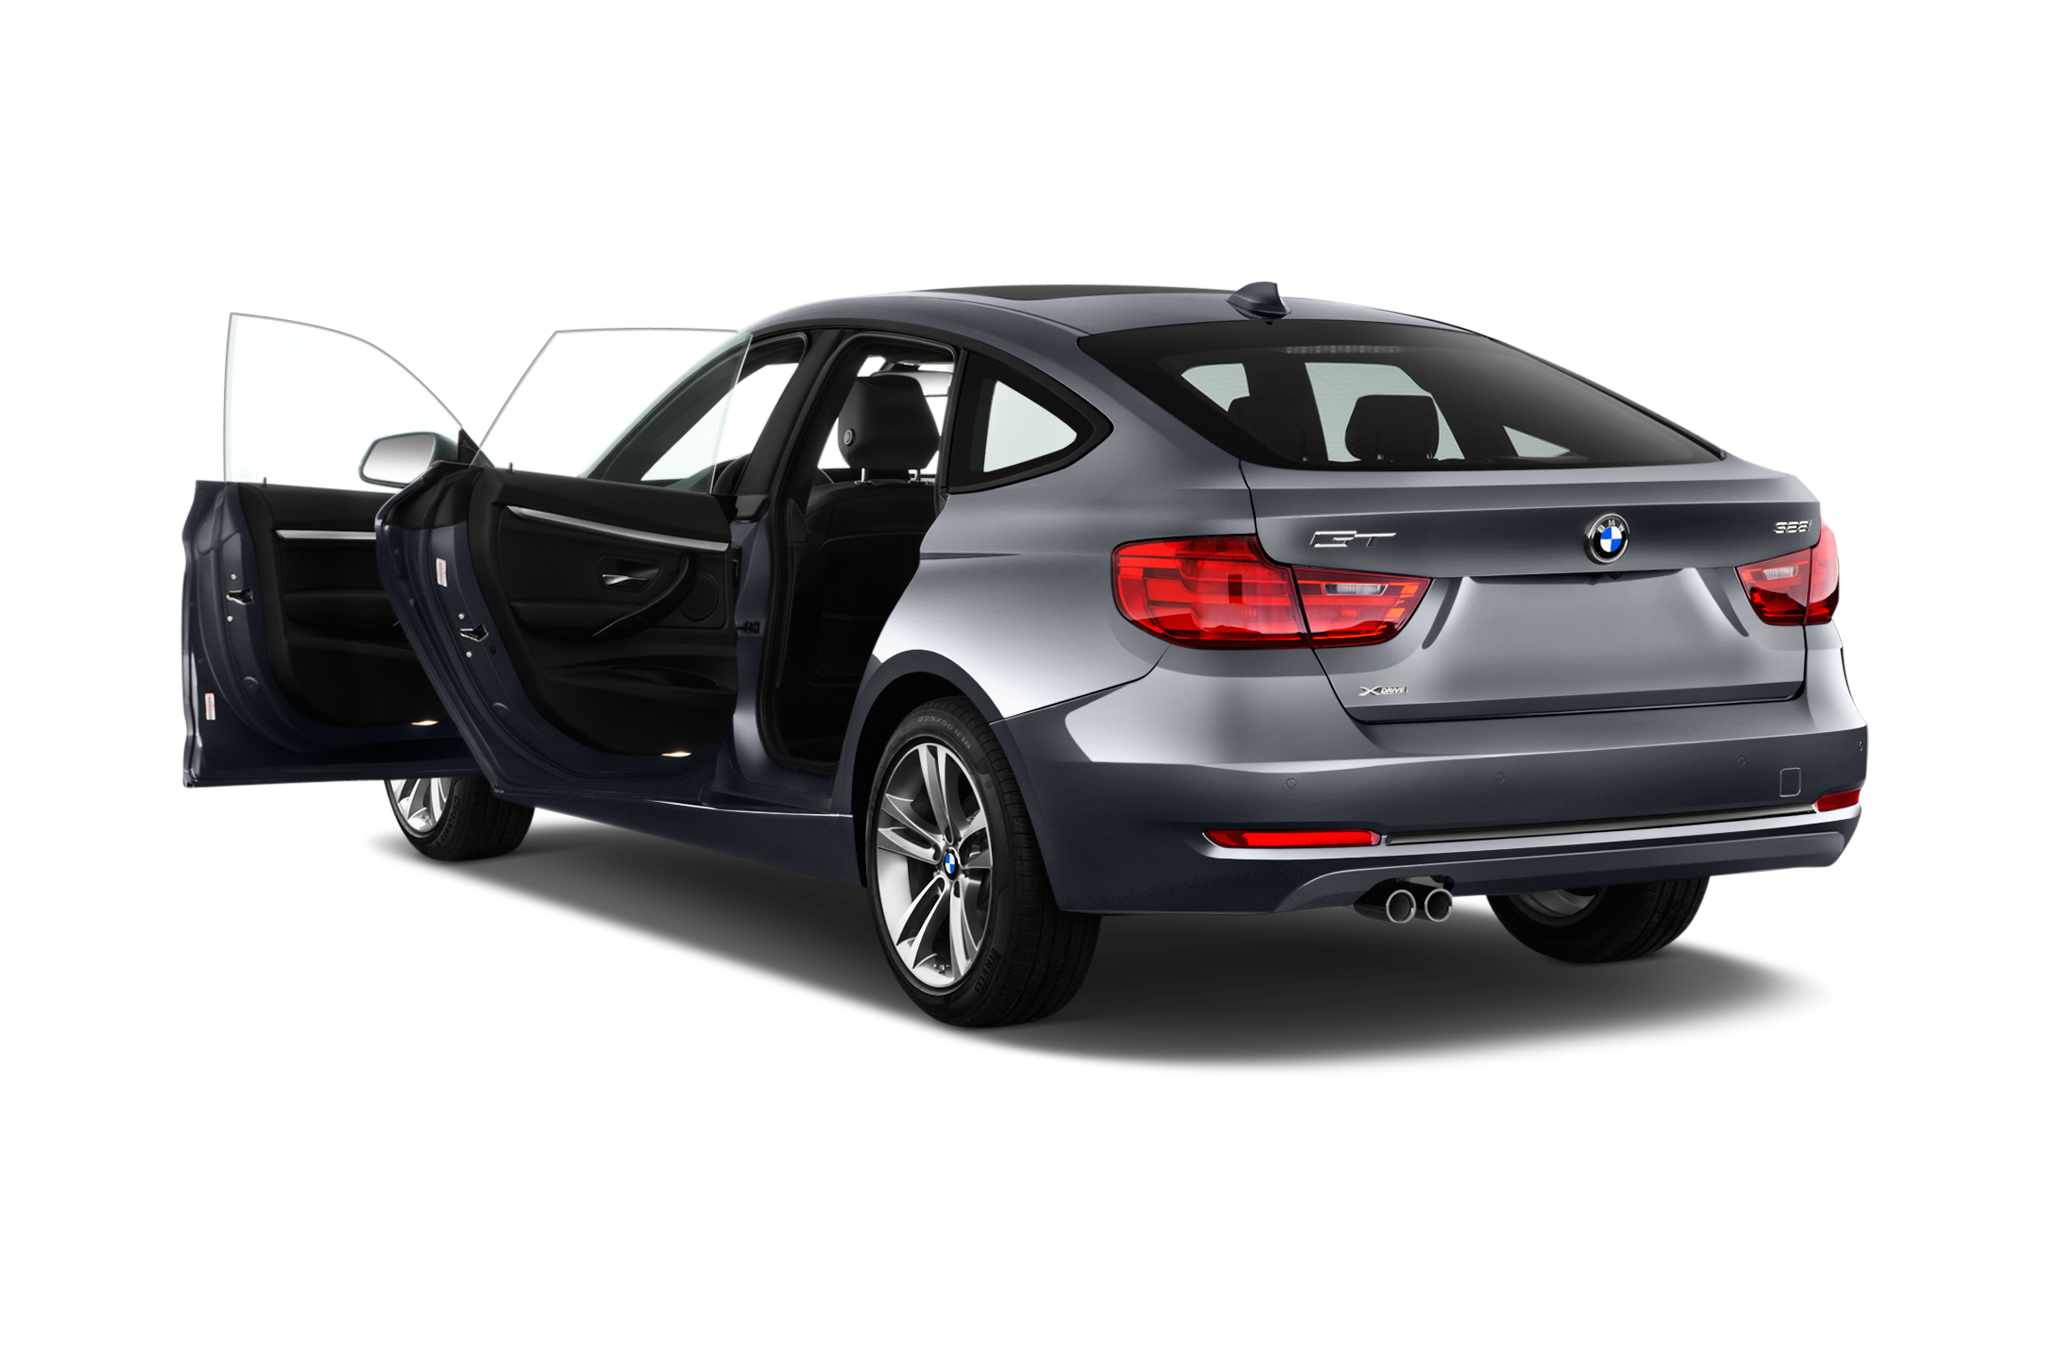 2018 bmw 3 series coupe car photos catalog 2018. Black Bedroom Furniture Sets. Home Design Ideas